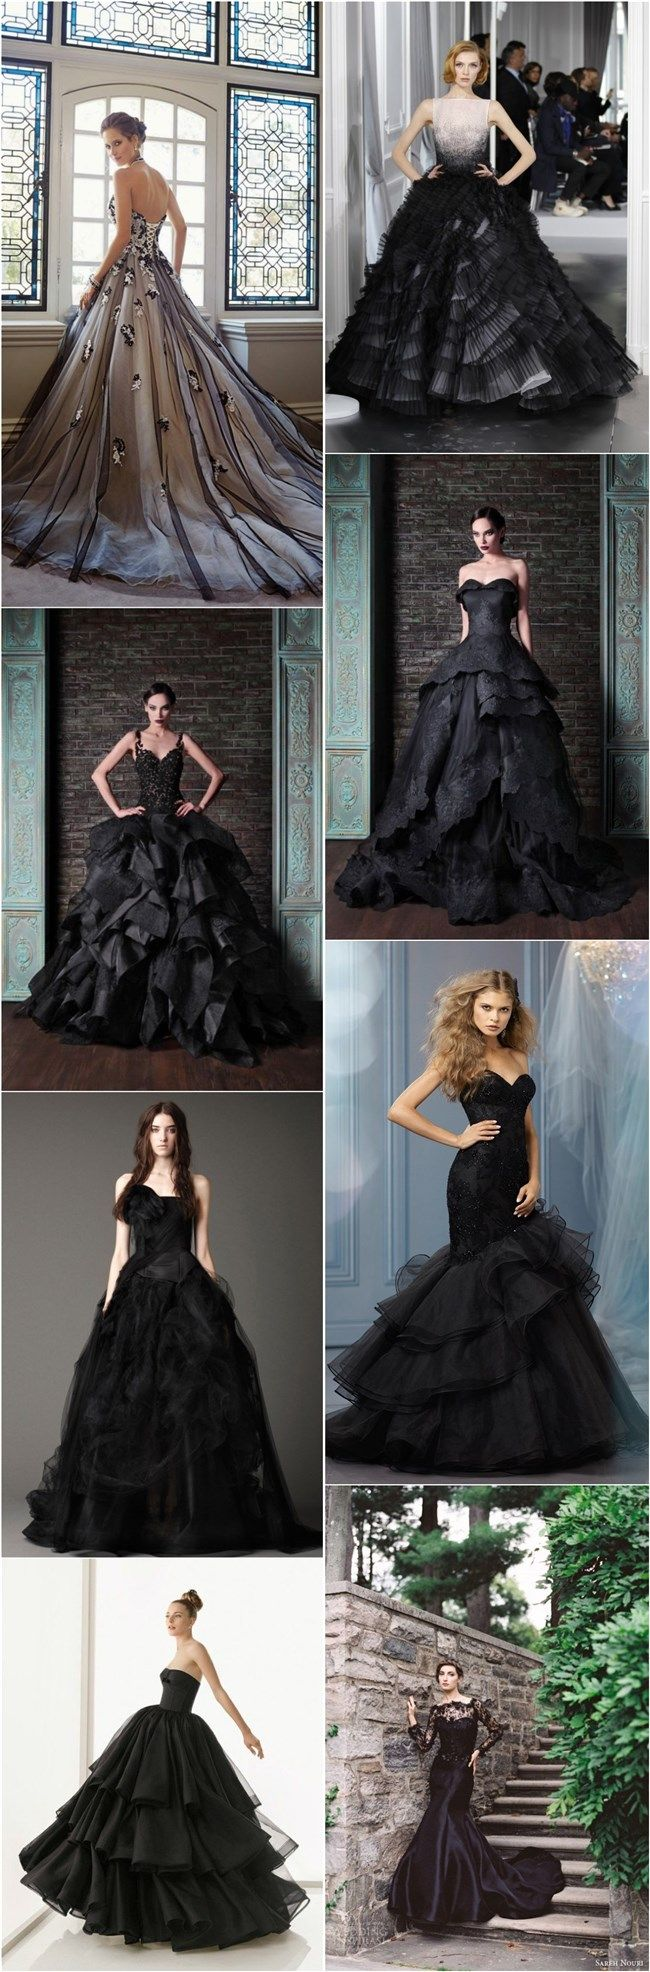 Top 25 Black Wedding Dresses and Bridal Gowns - Deer Pearl Flowers